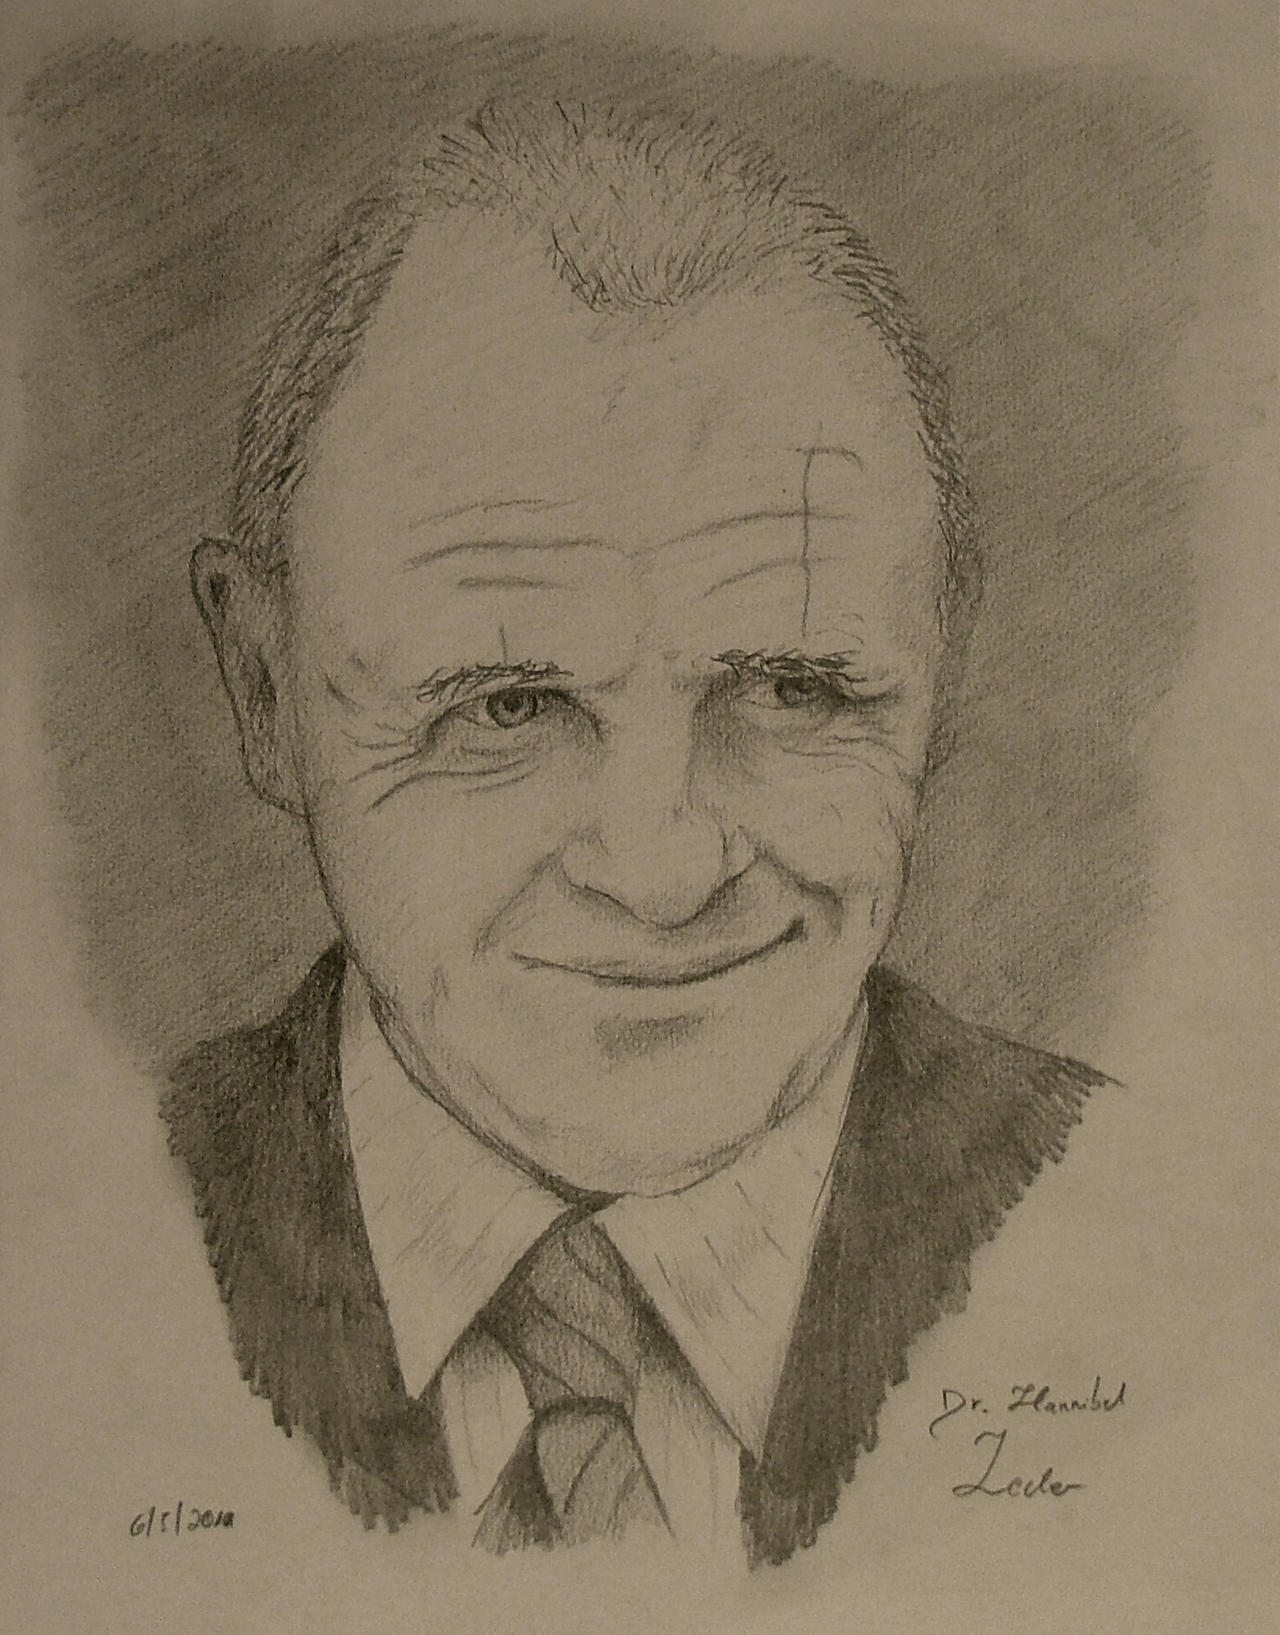 Dr. Hannibal Lecter by